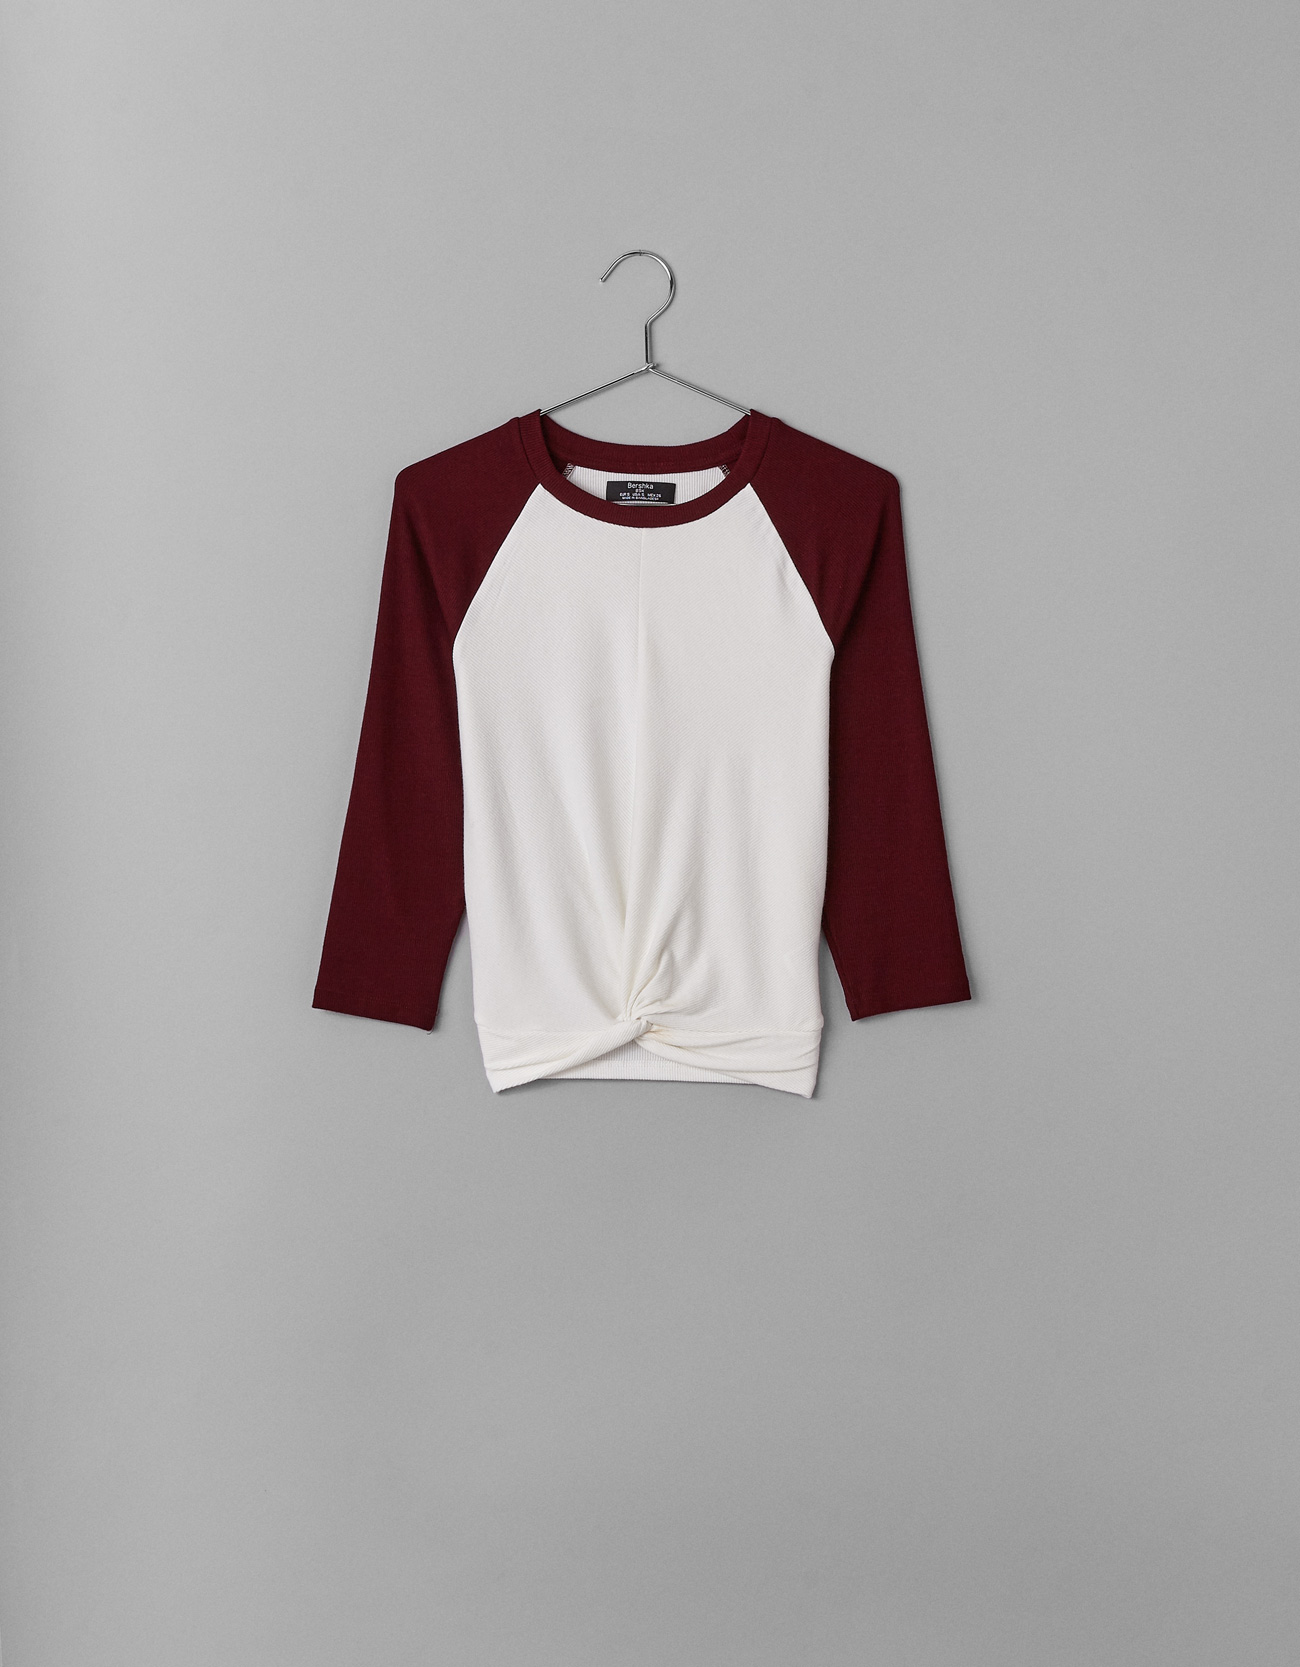 e75aabbf9fae Bershka Raglan sleeve T-shirt with front knot at £9.99 | love the brands